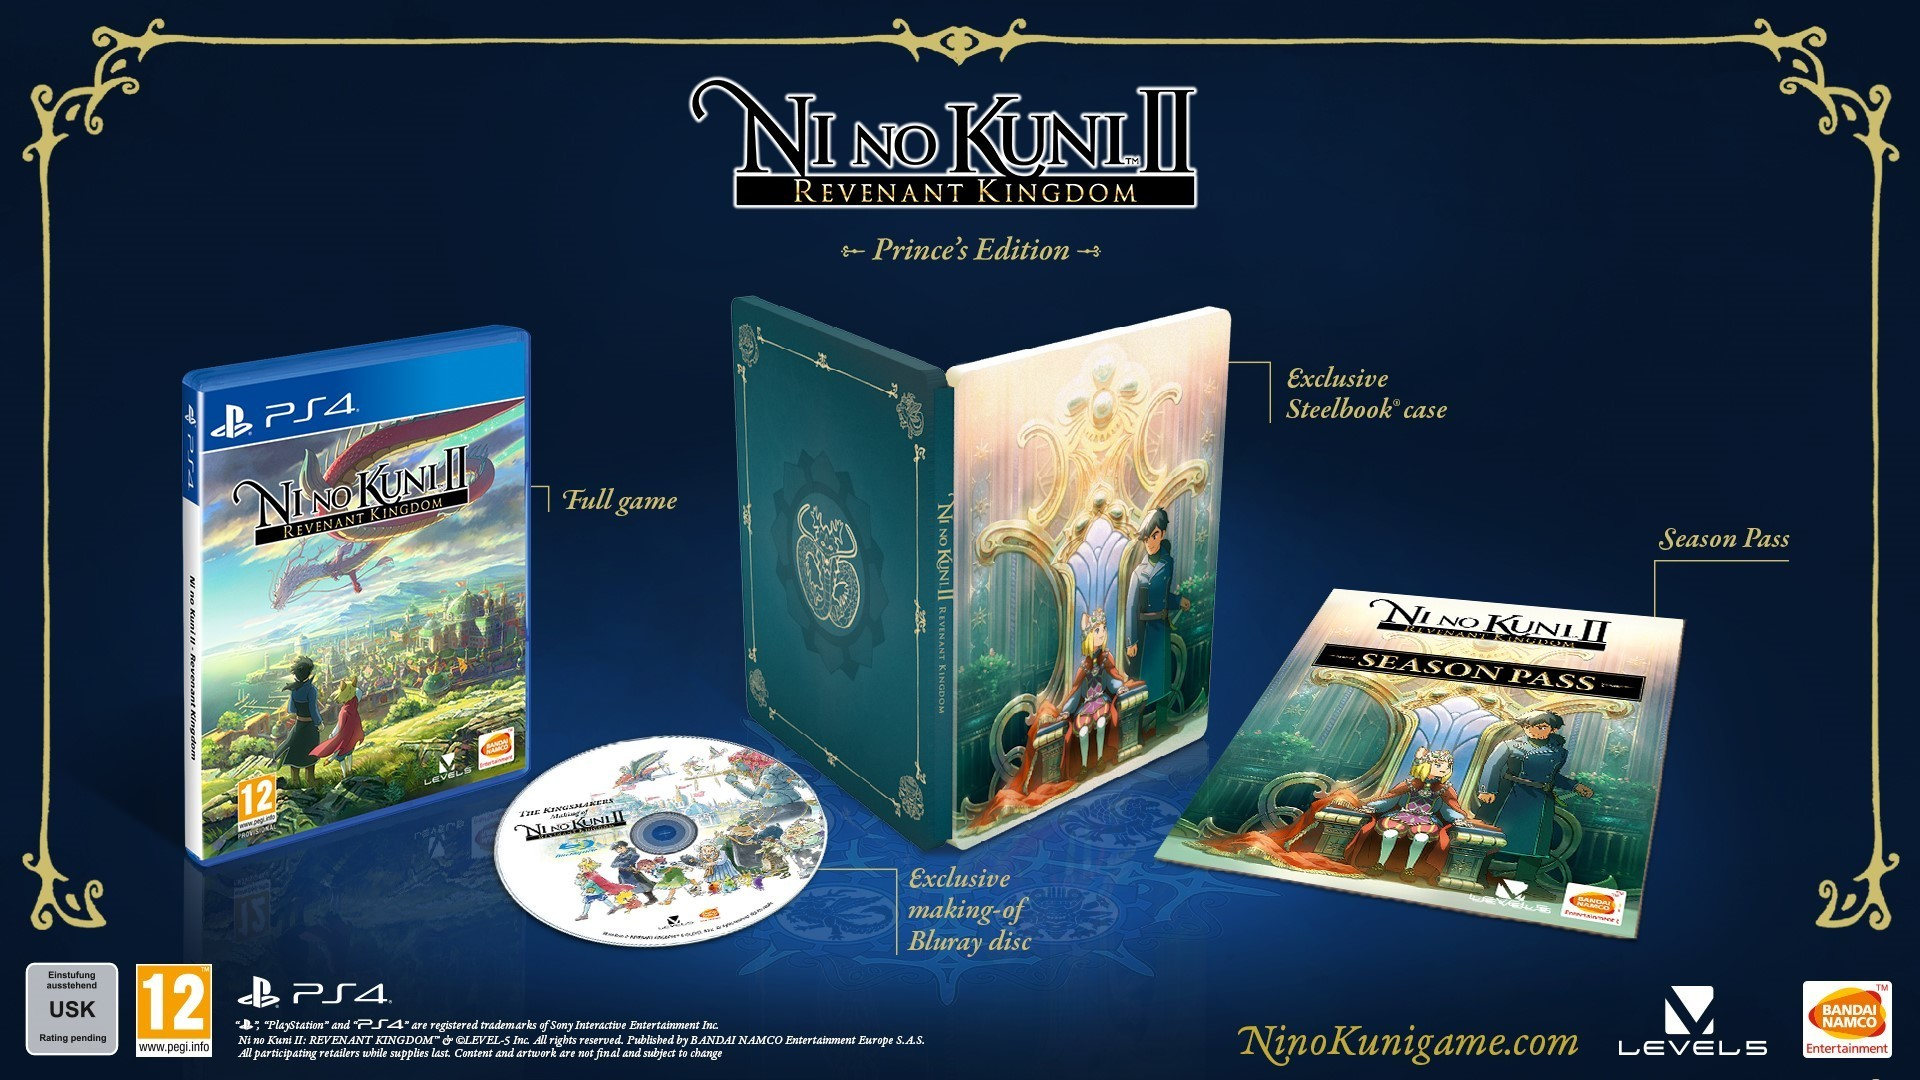 Ni No Kuni II: Revenant Kingdom – Collector's Edition / Prince's Edition